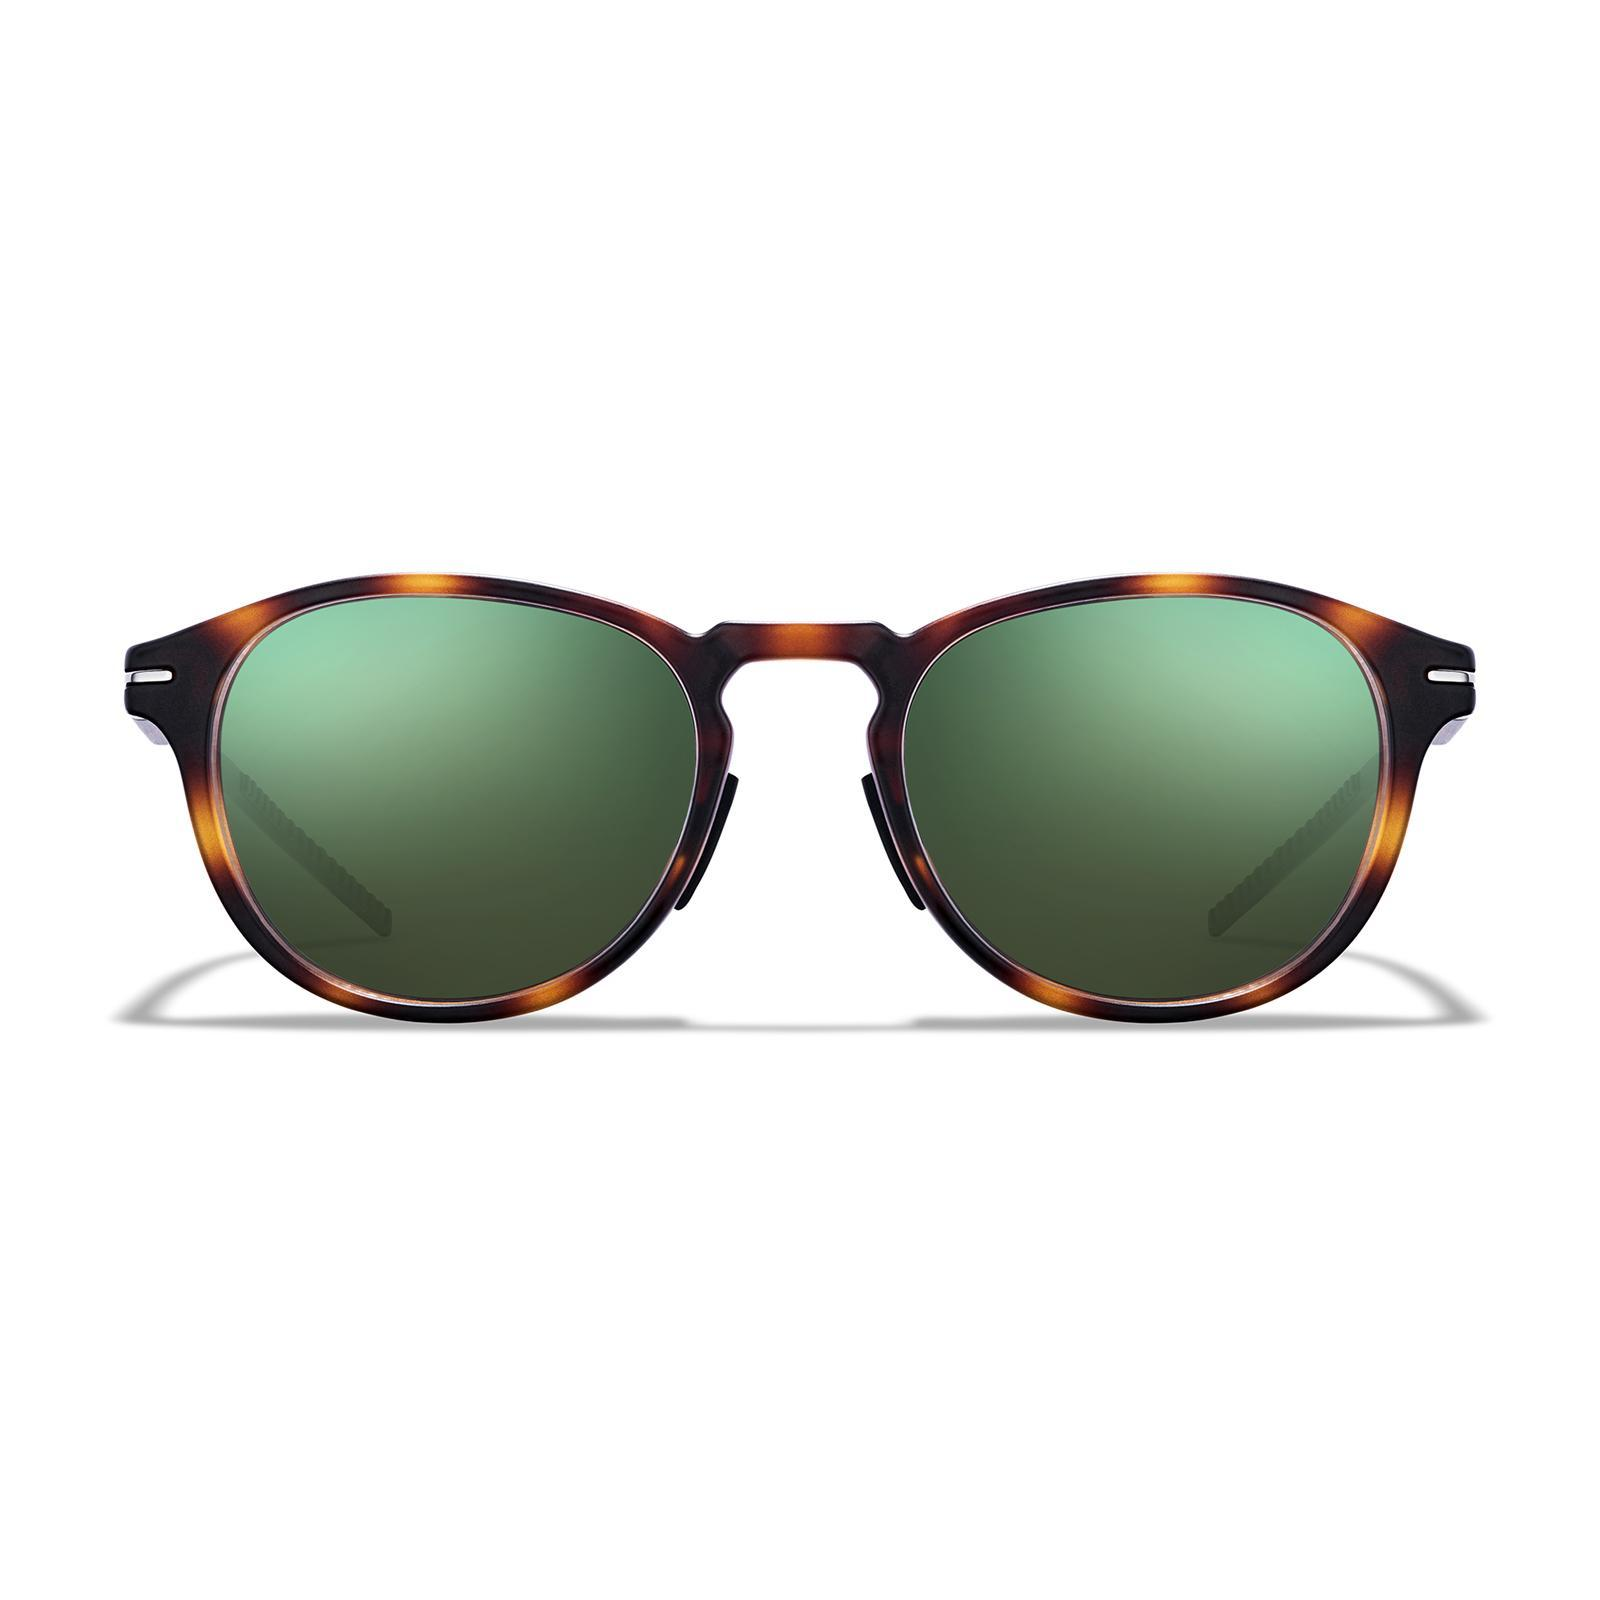 Oslo Sunglasses Product Image